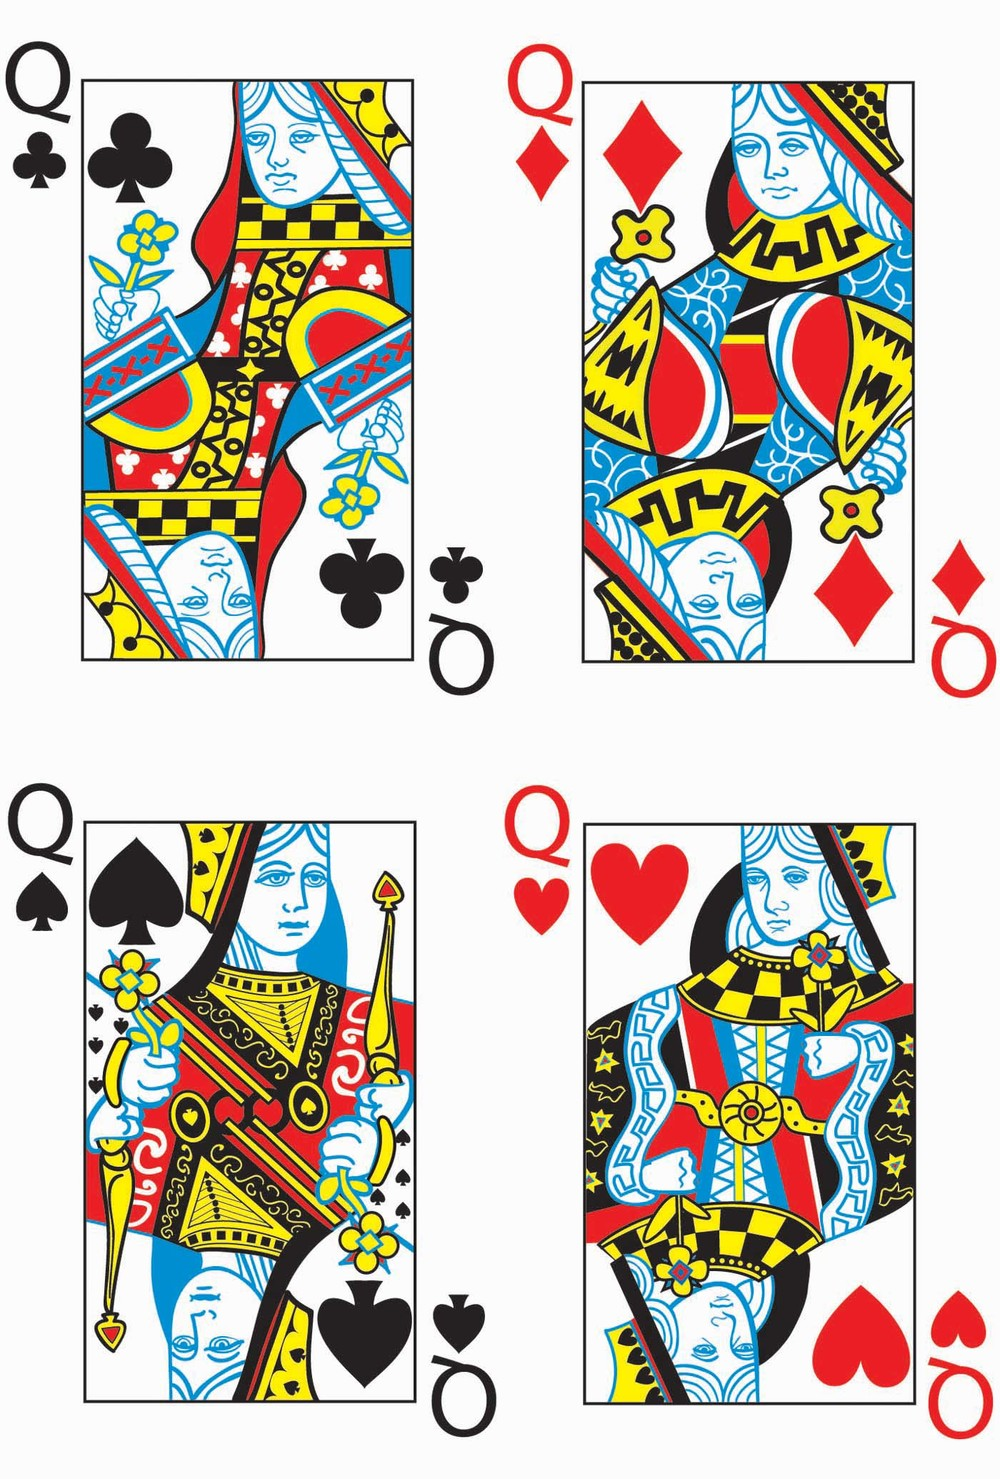 Card Deck (Multi Use)